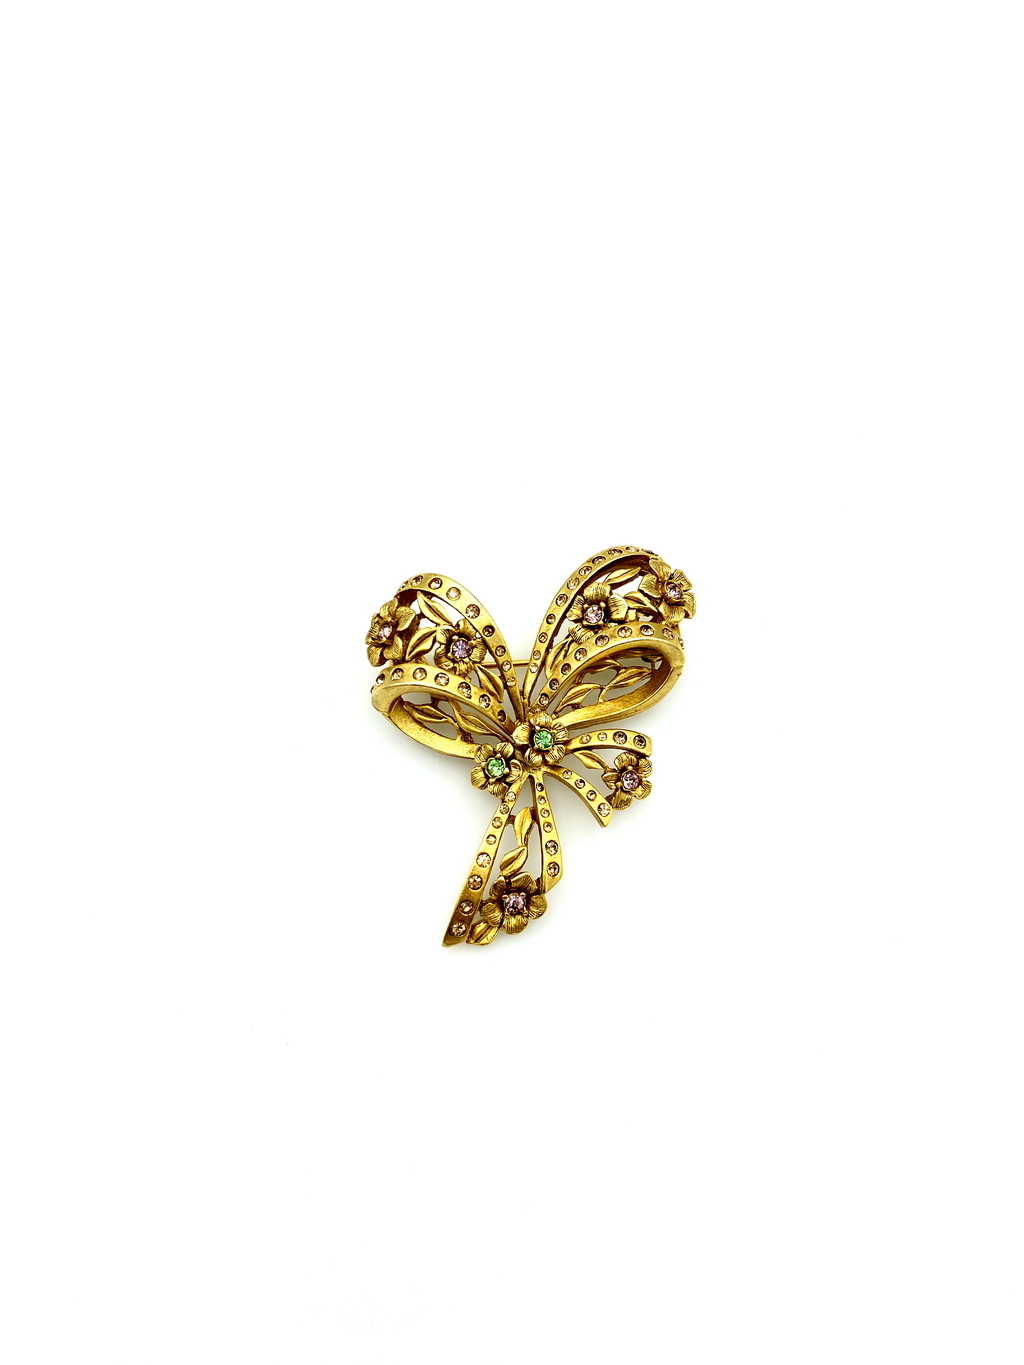 Gold Oscar De La Renta Feminine Bow & Flowers Brooch-Sustainable Fashion with Vintage Style-Trending Designer Fashion-24 Wishes